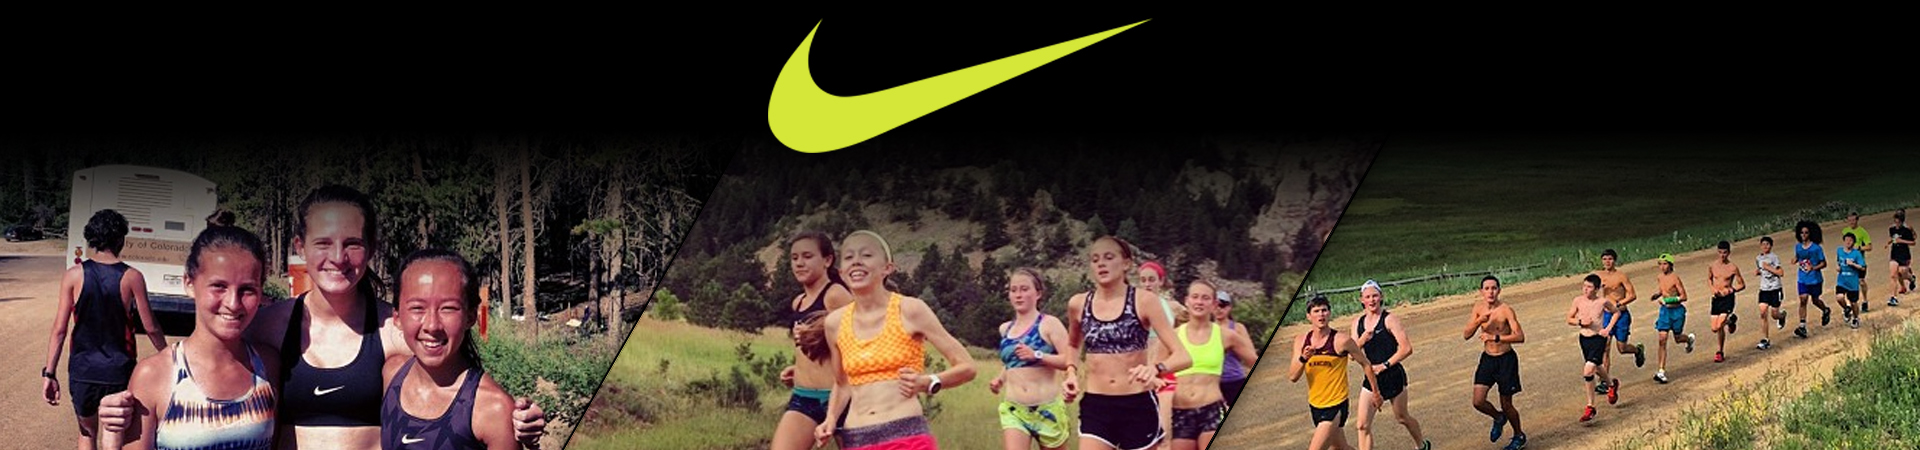 173bfd5c64 Nike Boulder Running Camps